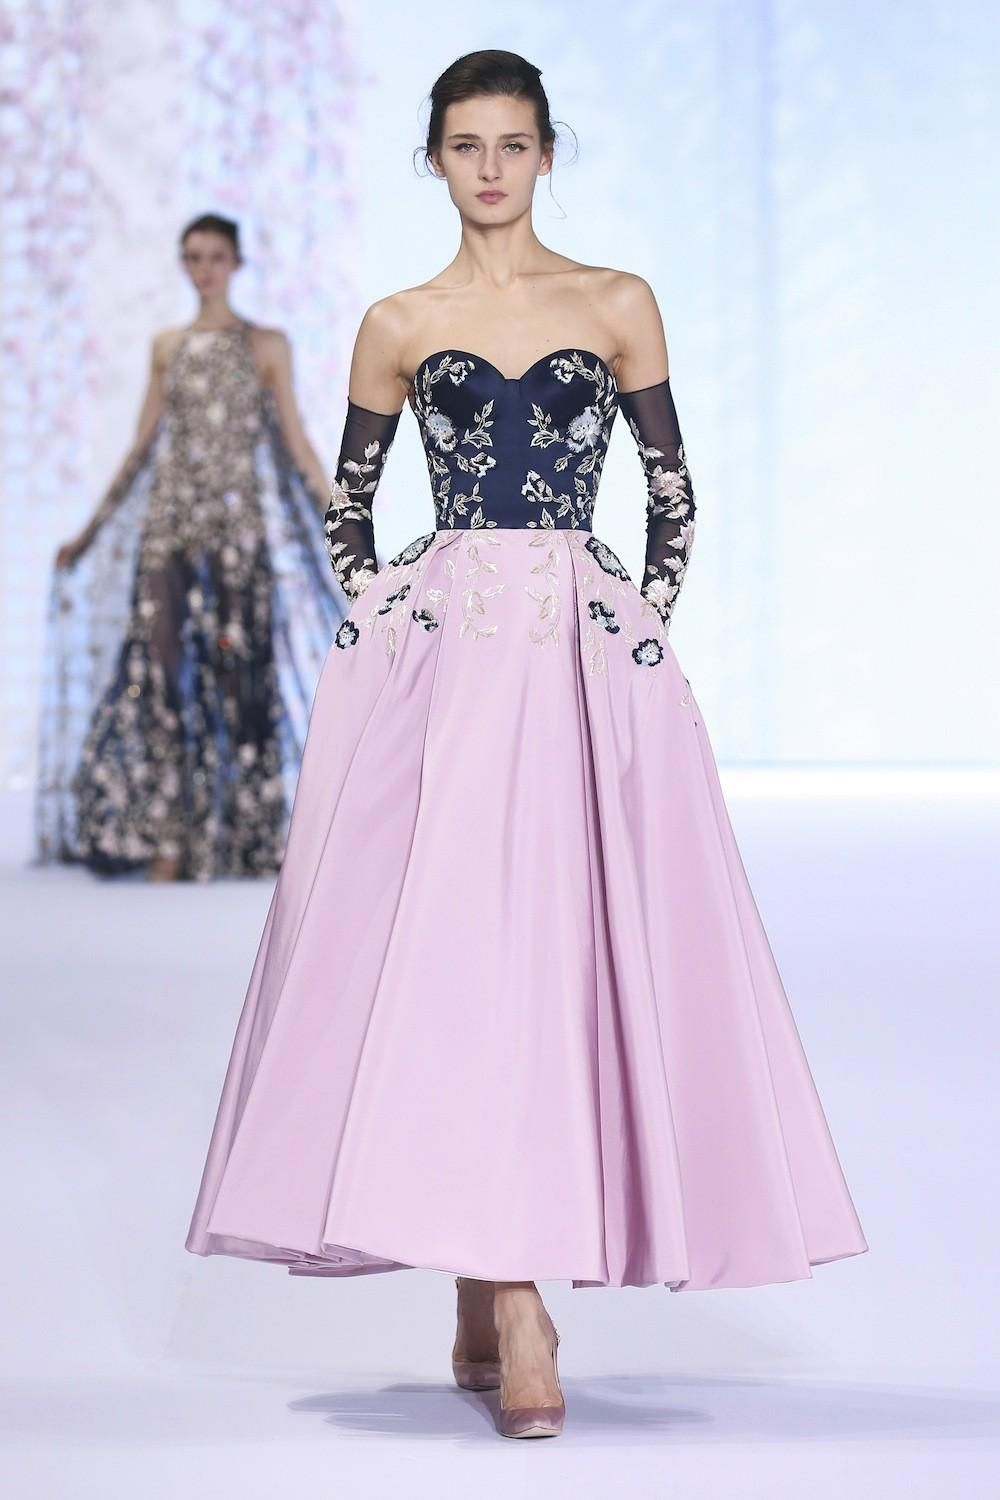 Foto RARCL201614 Ralph & Russo Couture Lente 2016 Pink and Black ...